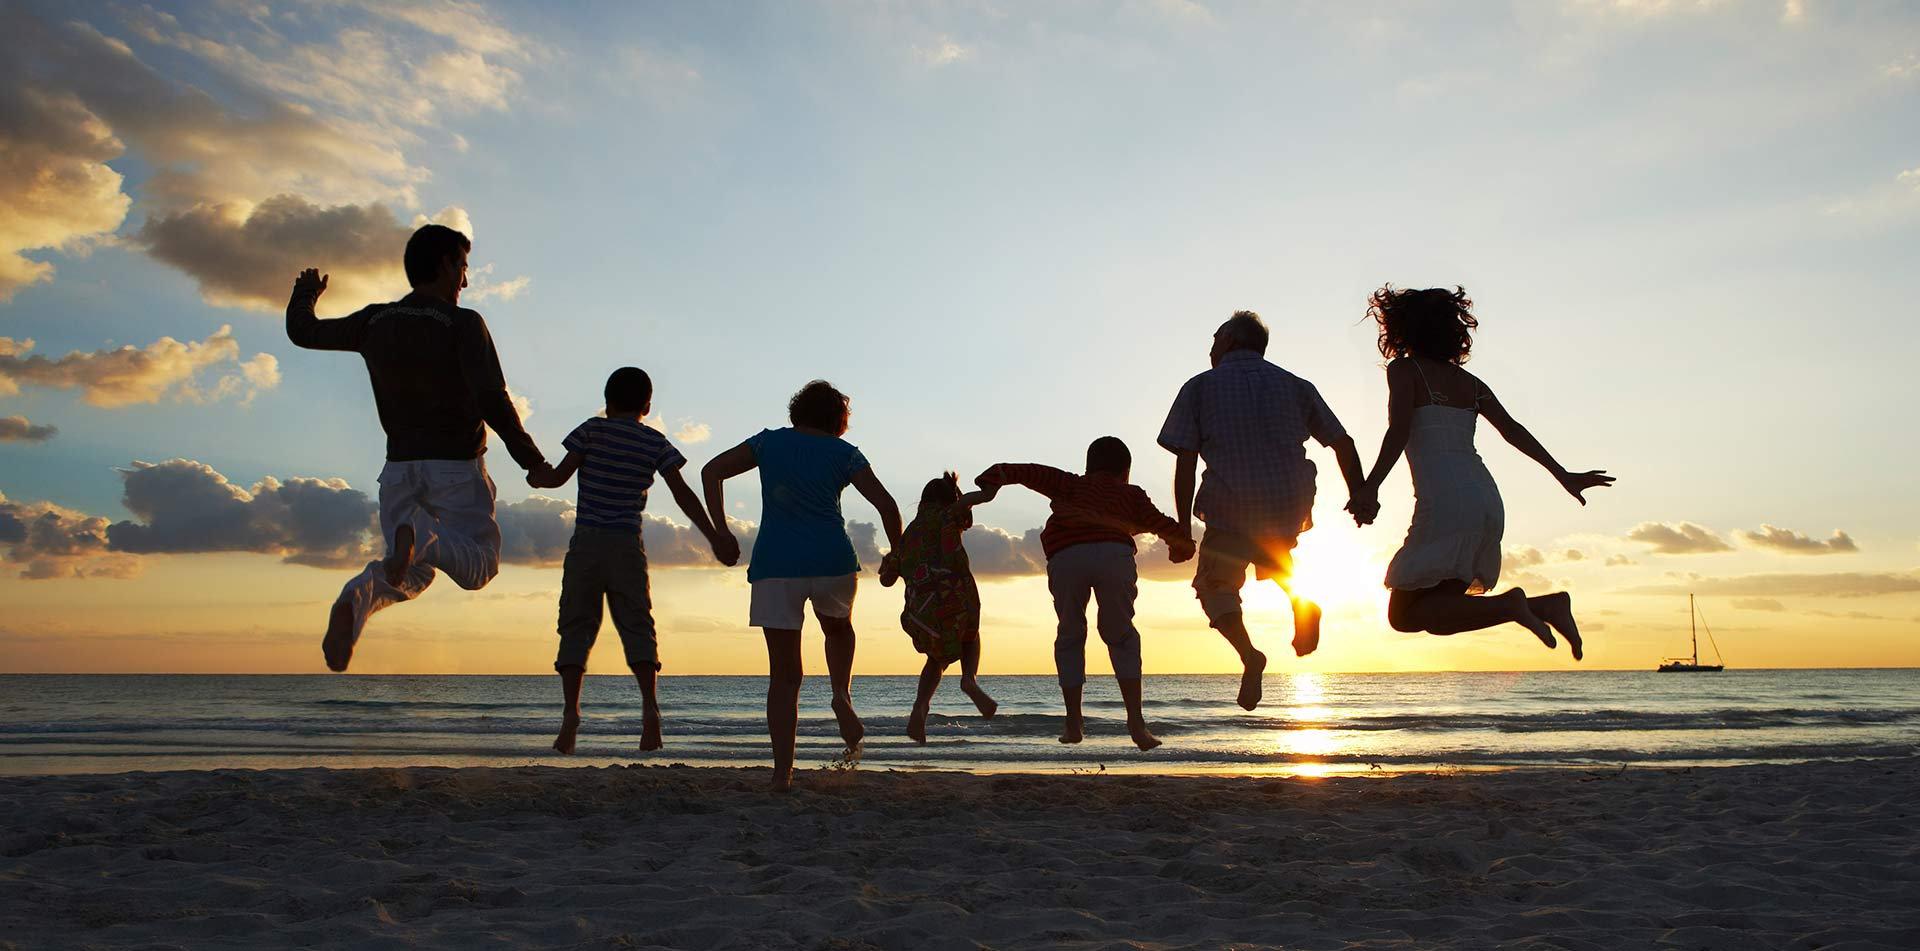 Family jumping on the beach at sunset - luxury vacation destinations